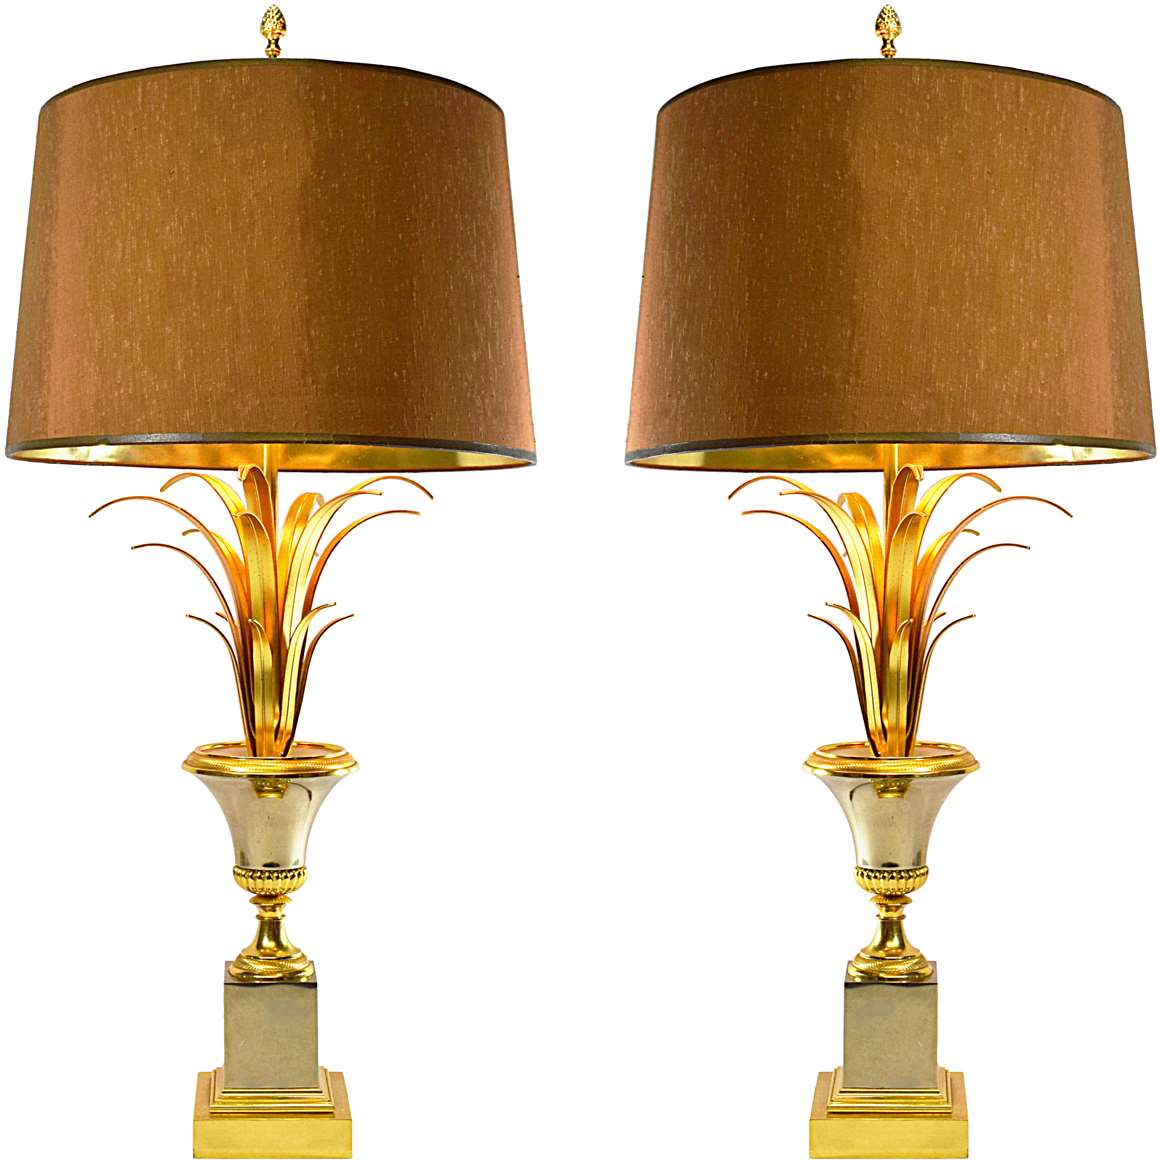 S.A. Boulanger Brass & Chrome Reed Table Lamps